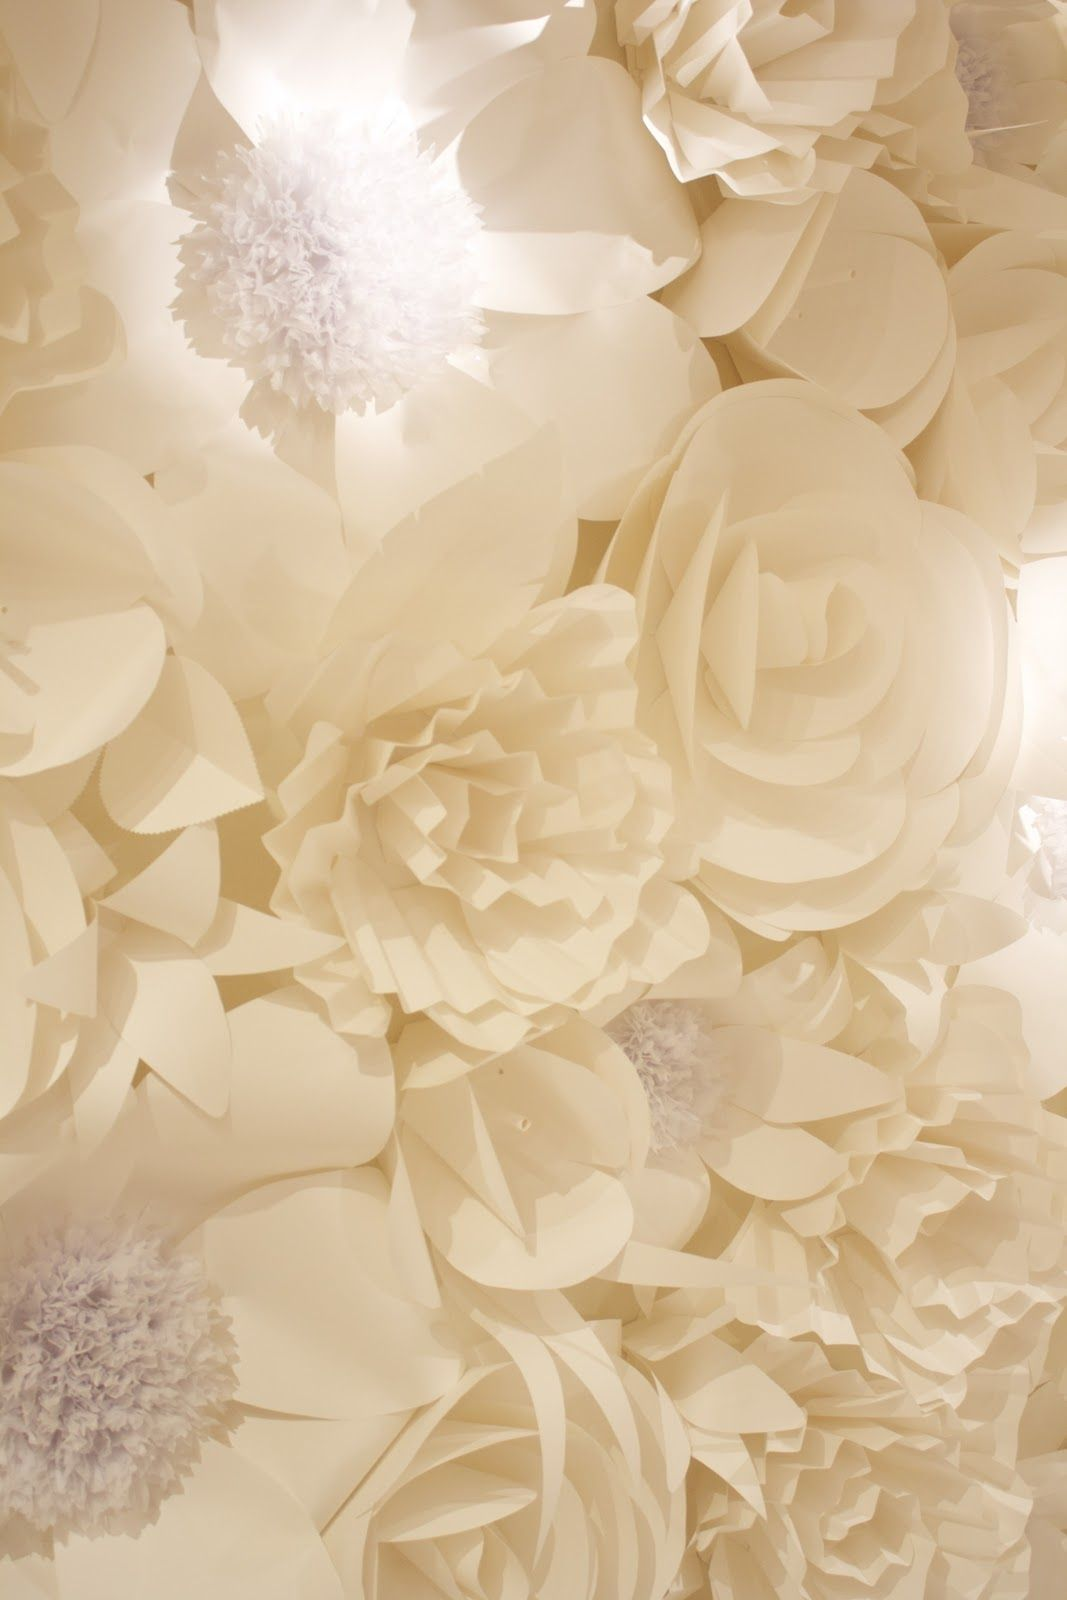 The White Wedding ~ Craft and Couture | {"|1067|1600|?|en|2|0fd8a6b48352f556f3dd468590fc1851|False|UNLIKELY|0.3103856146335602